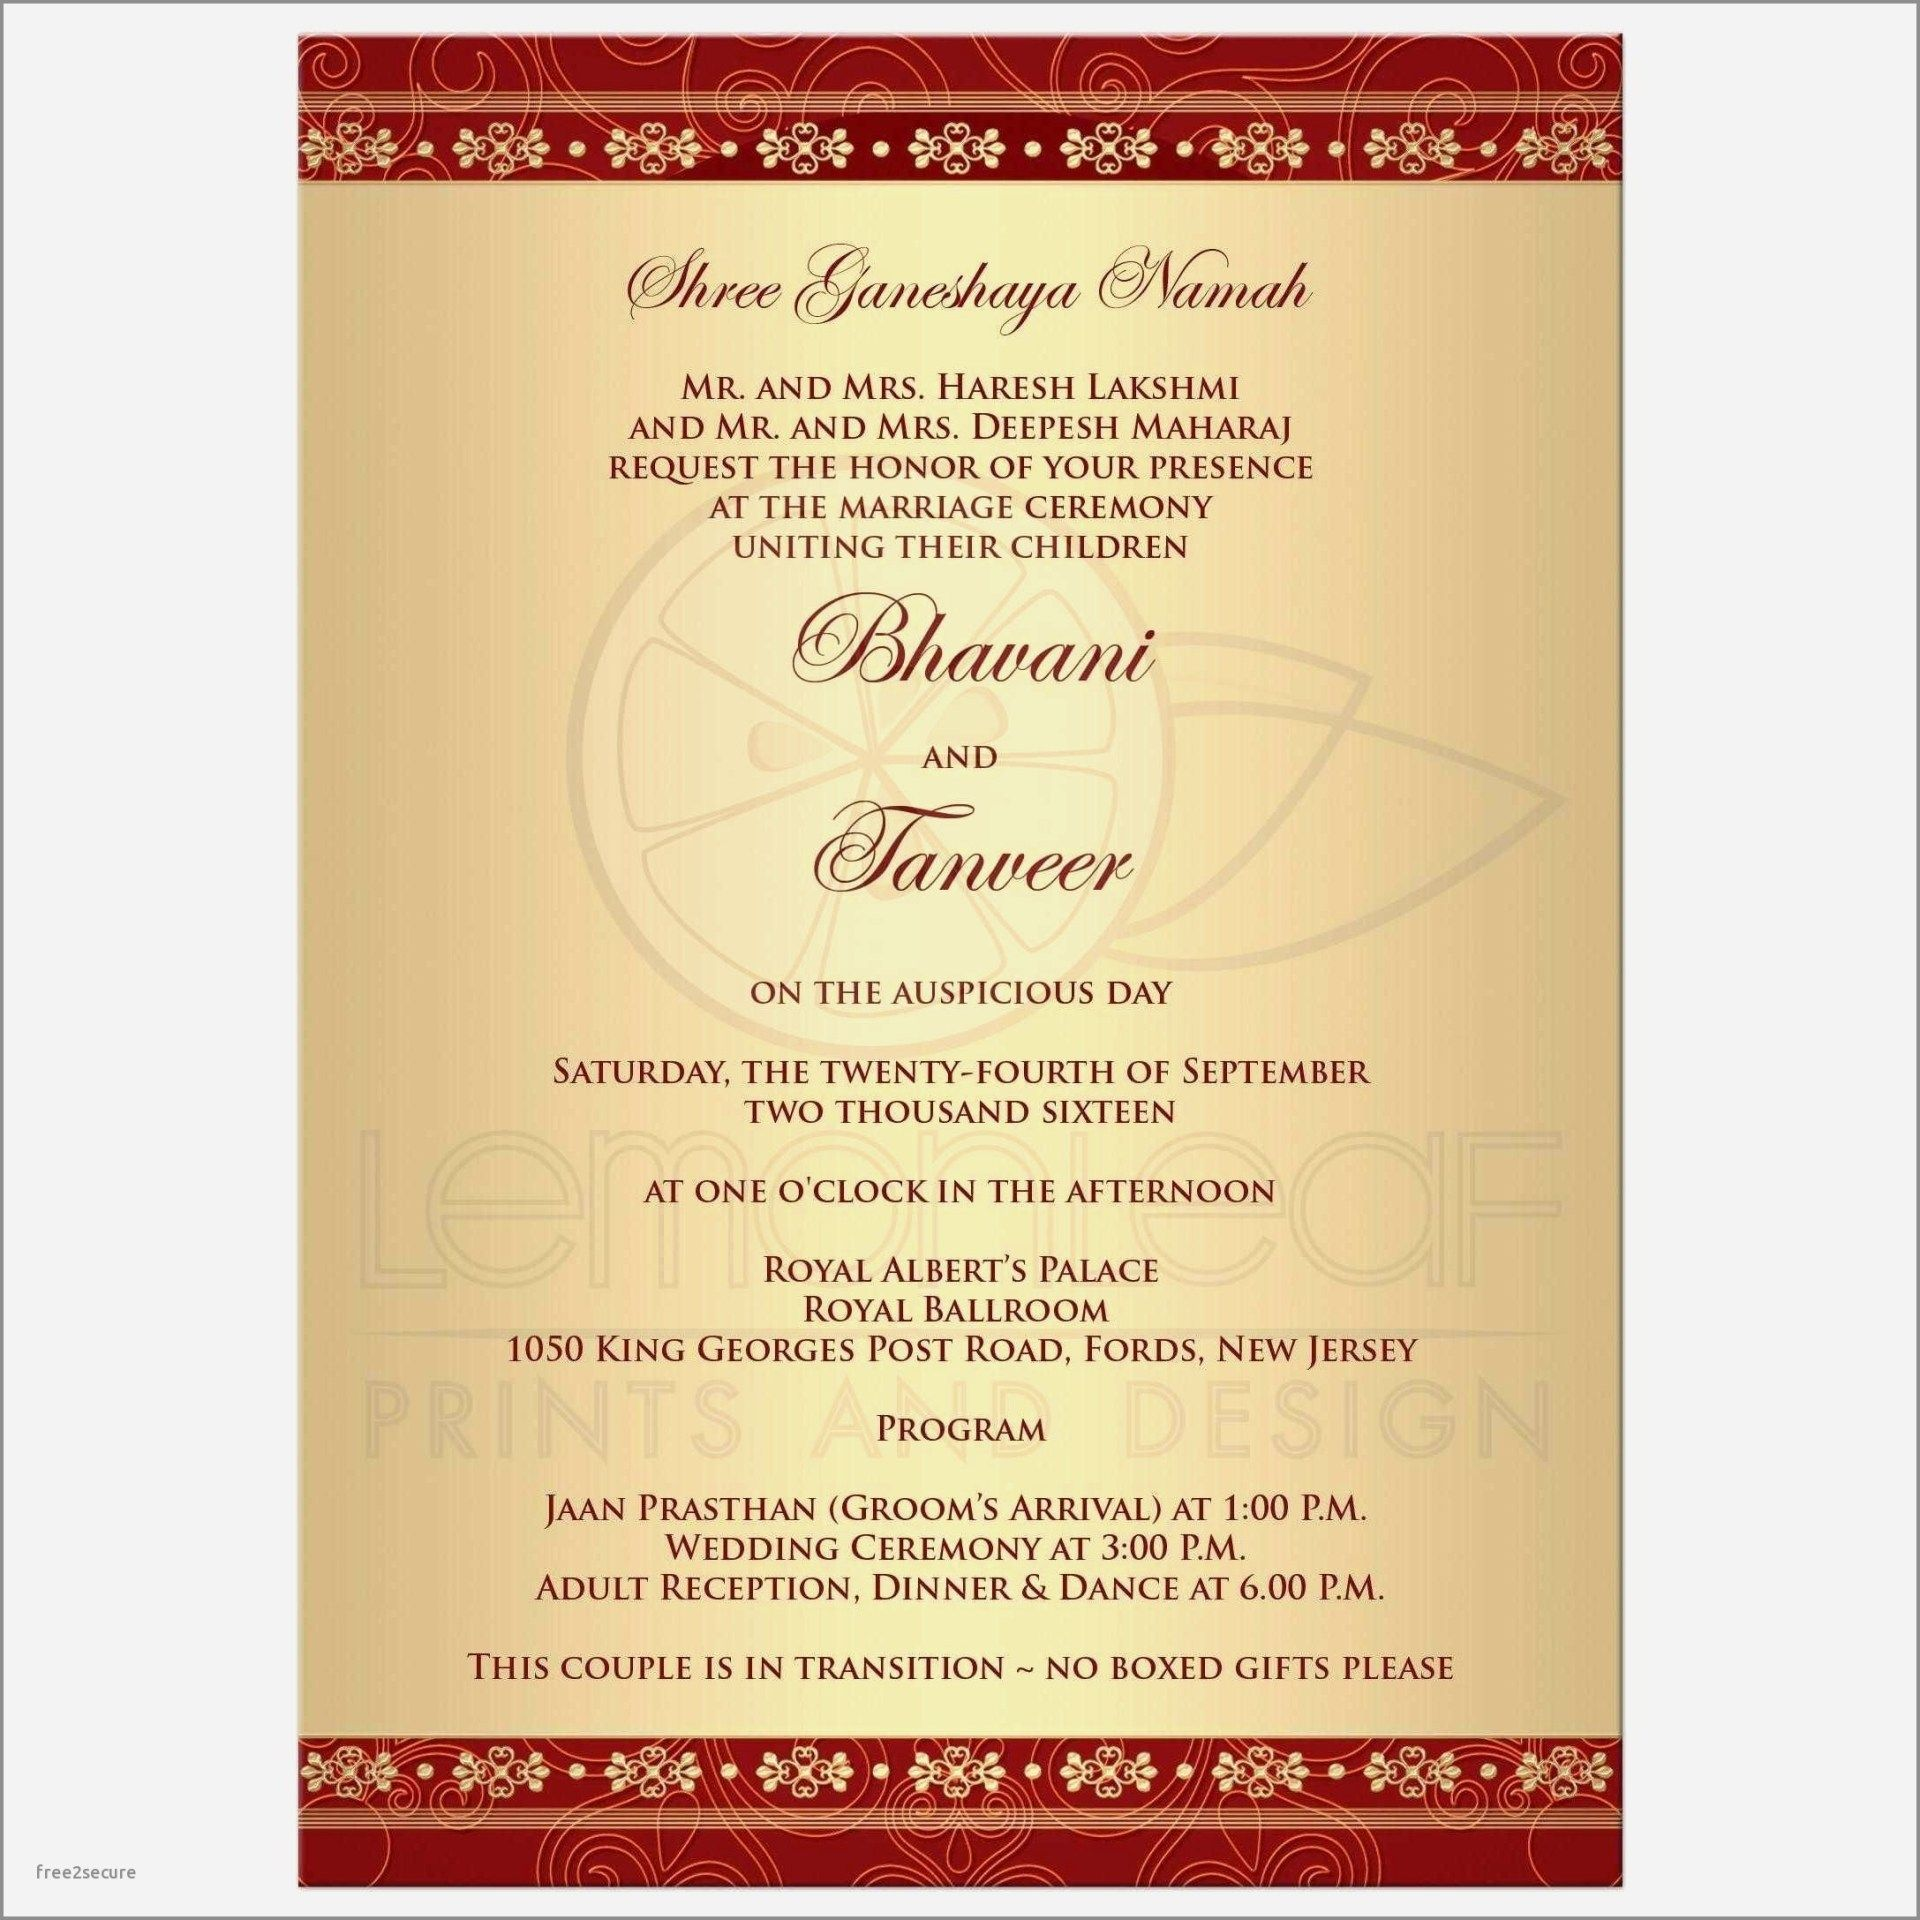 37 Best Image Of Reception Invitation Wording After Private Wedding Regiosfera Com Wedding Invitation Quotes Marriage Invitation Card Indian Wedding Invitation Wording